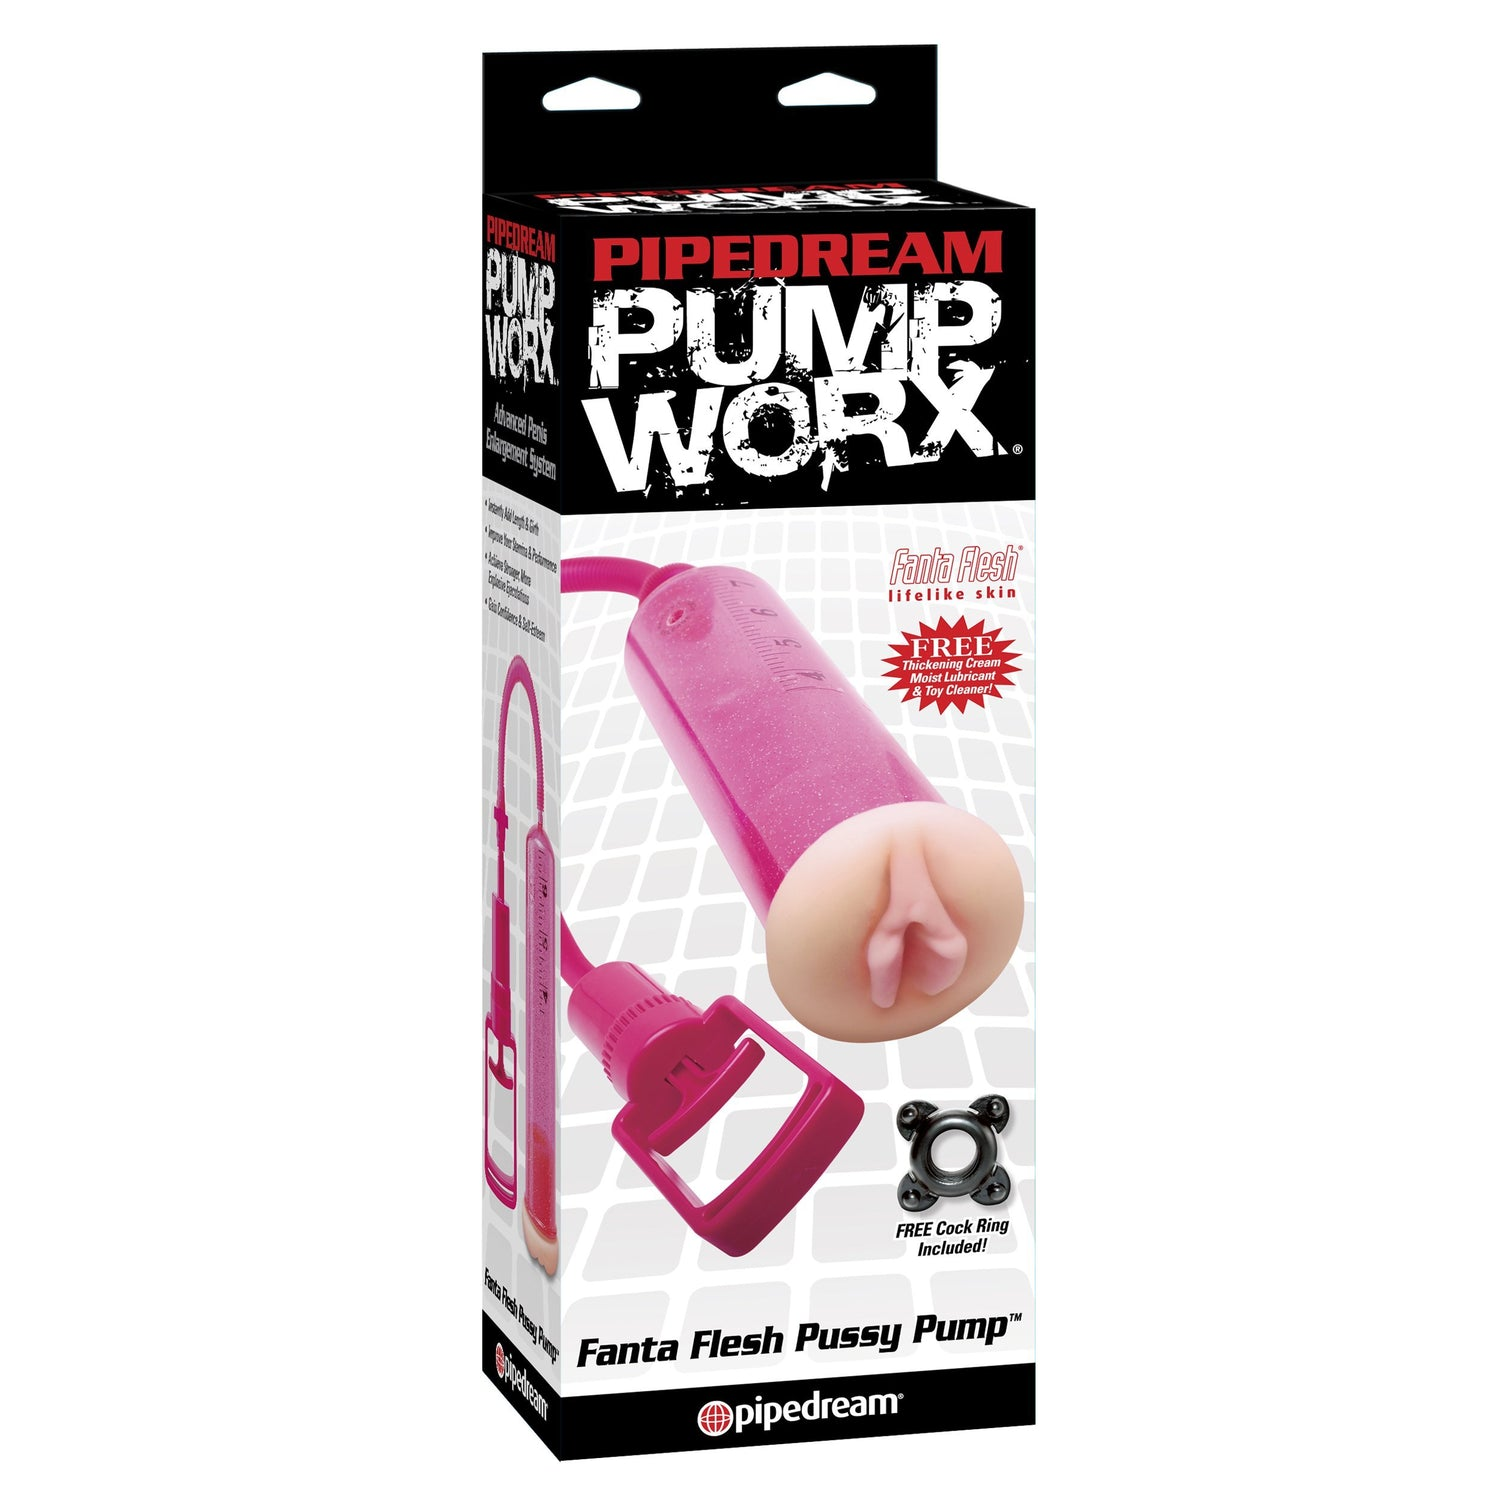 Pipedream - Pump Worx Fanta Flesh Pussy Pump (Pink) Penis Pump (Non Vibration) Singapore